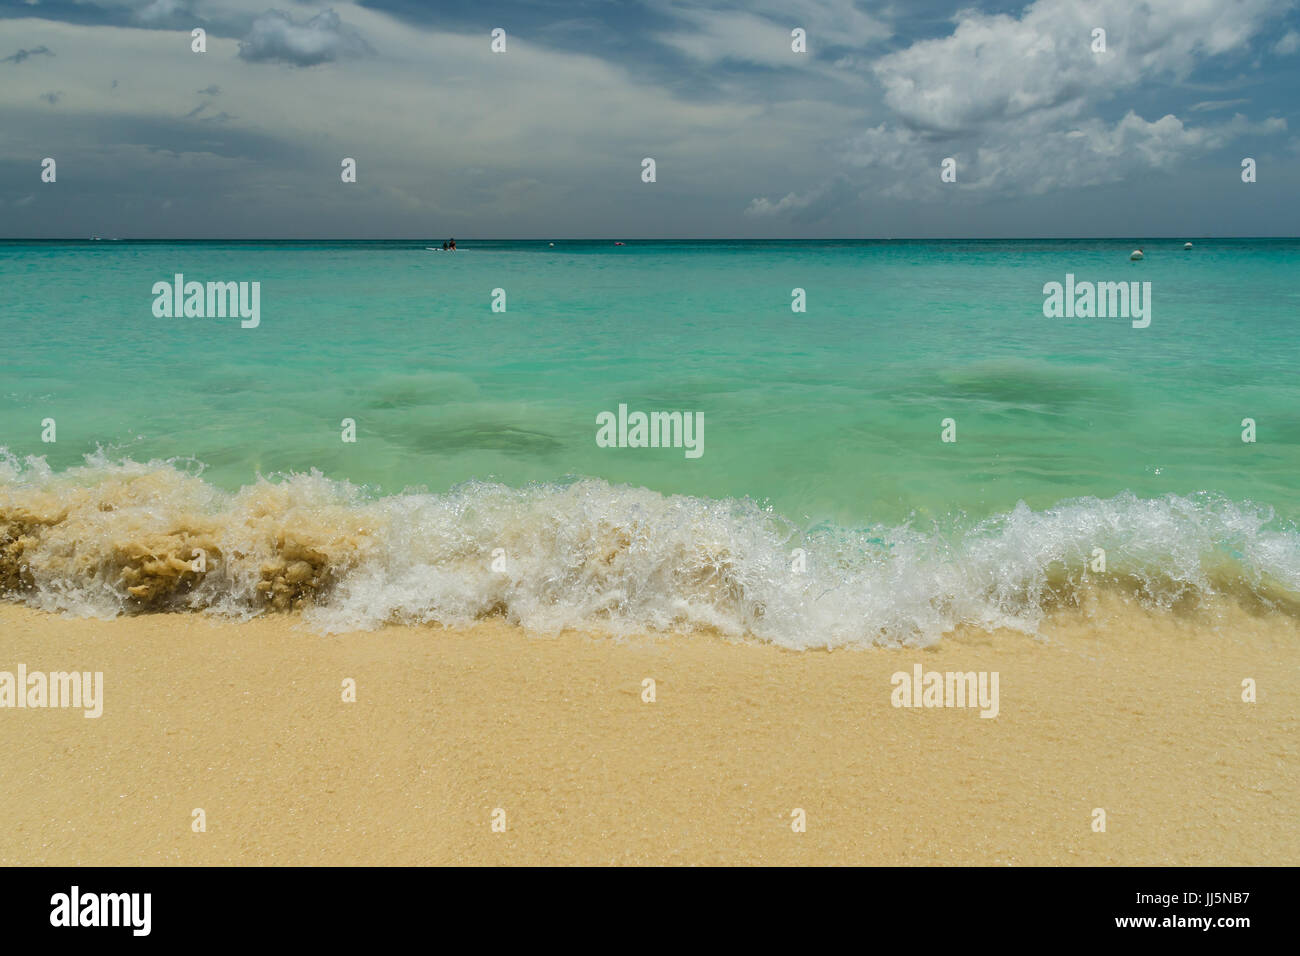 Crashing waves on Seven Mile Beach in Grand Cayman - Stock Image